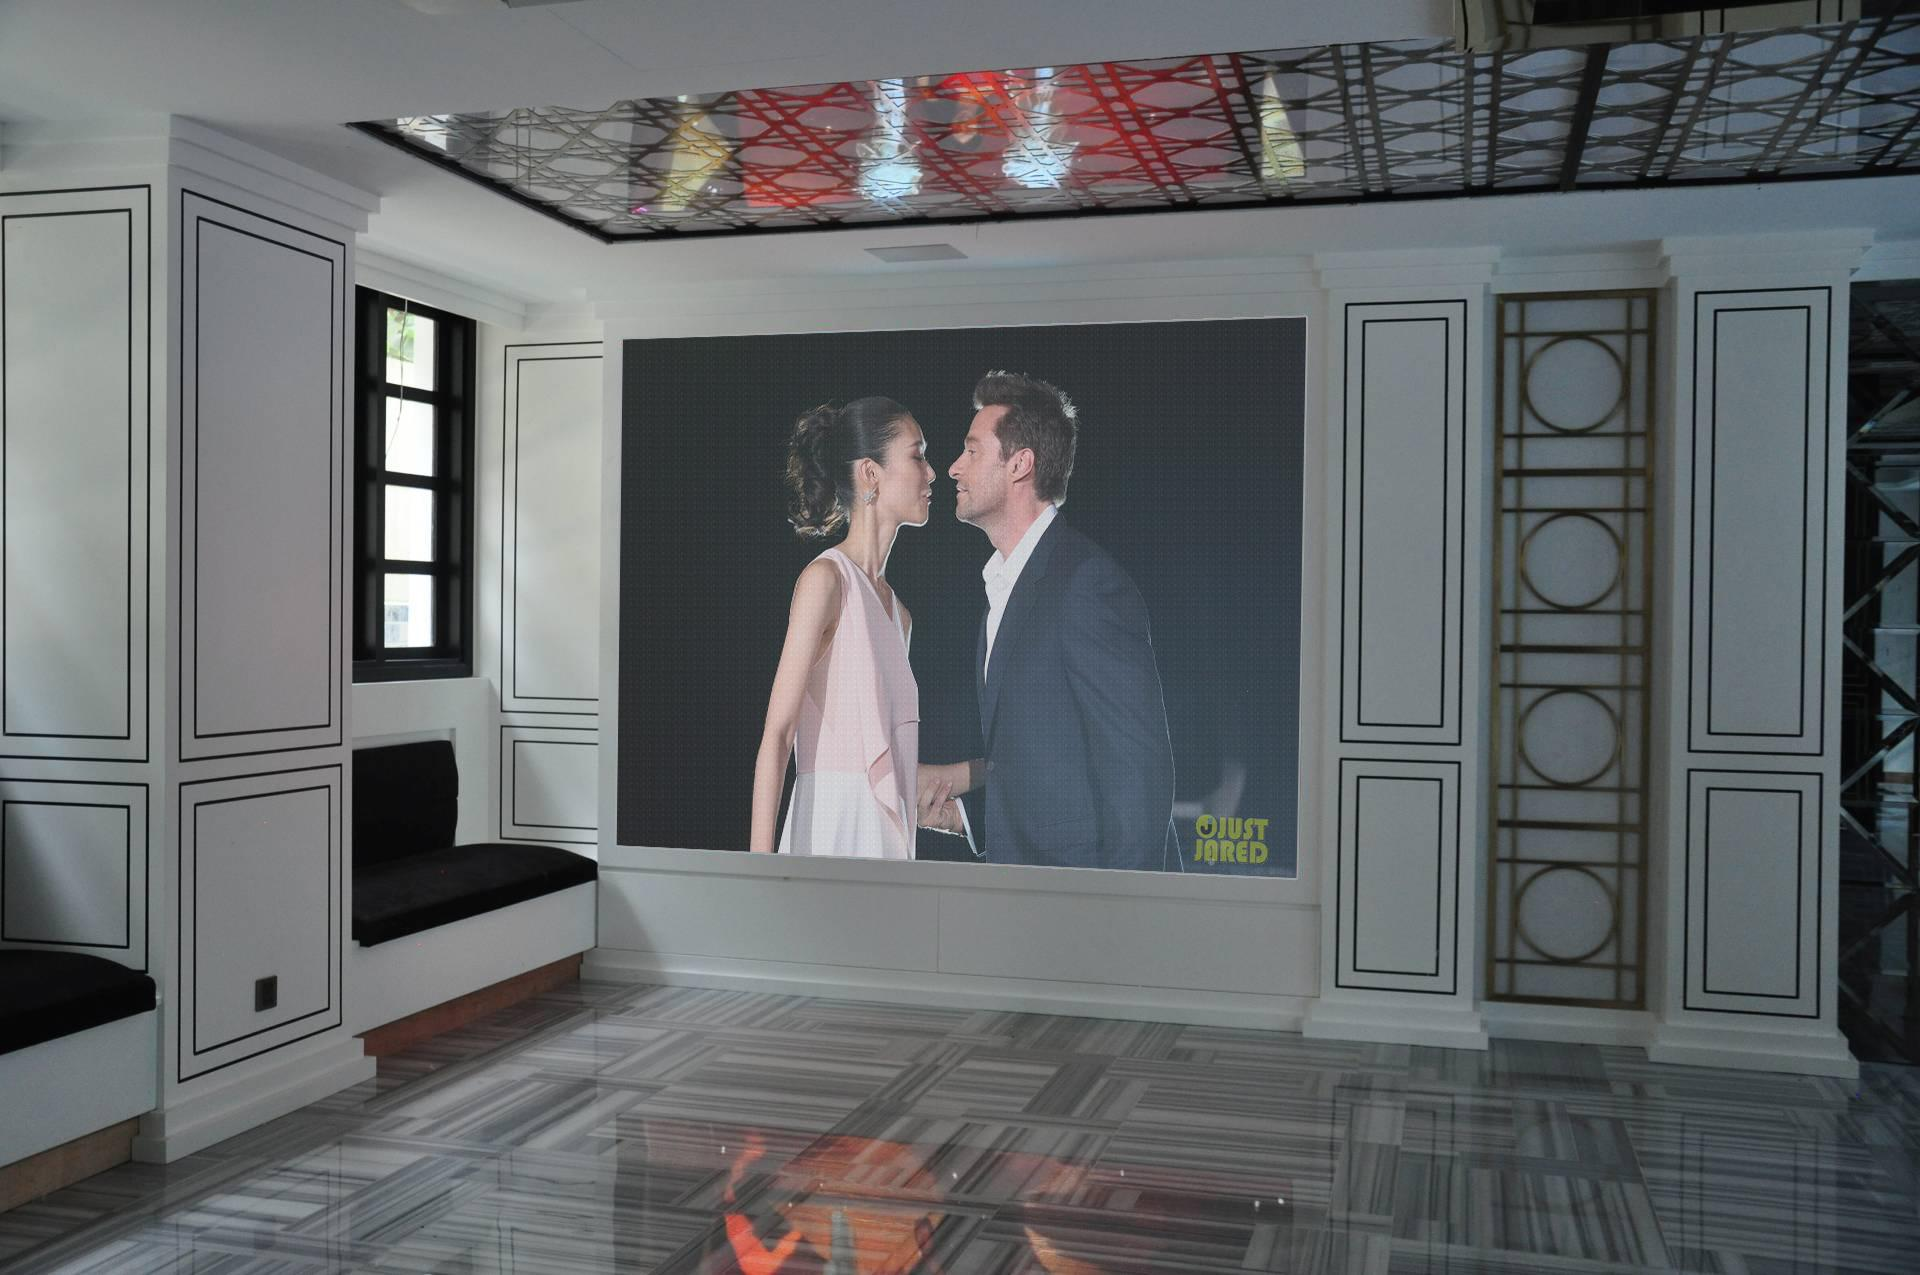 P2mm SMD1010 High Definition Indoor Fixed LED Video Screen Display Video Wall Bo 3